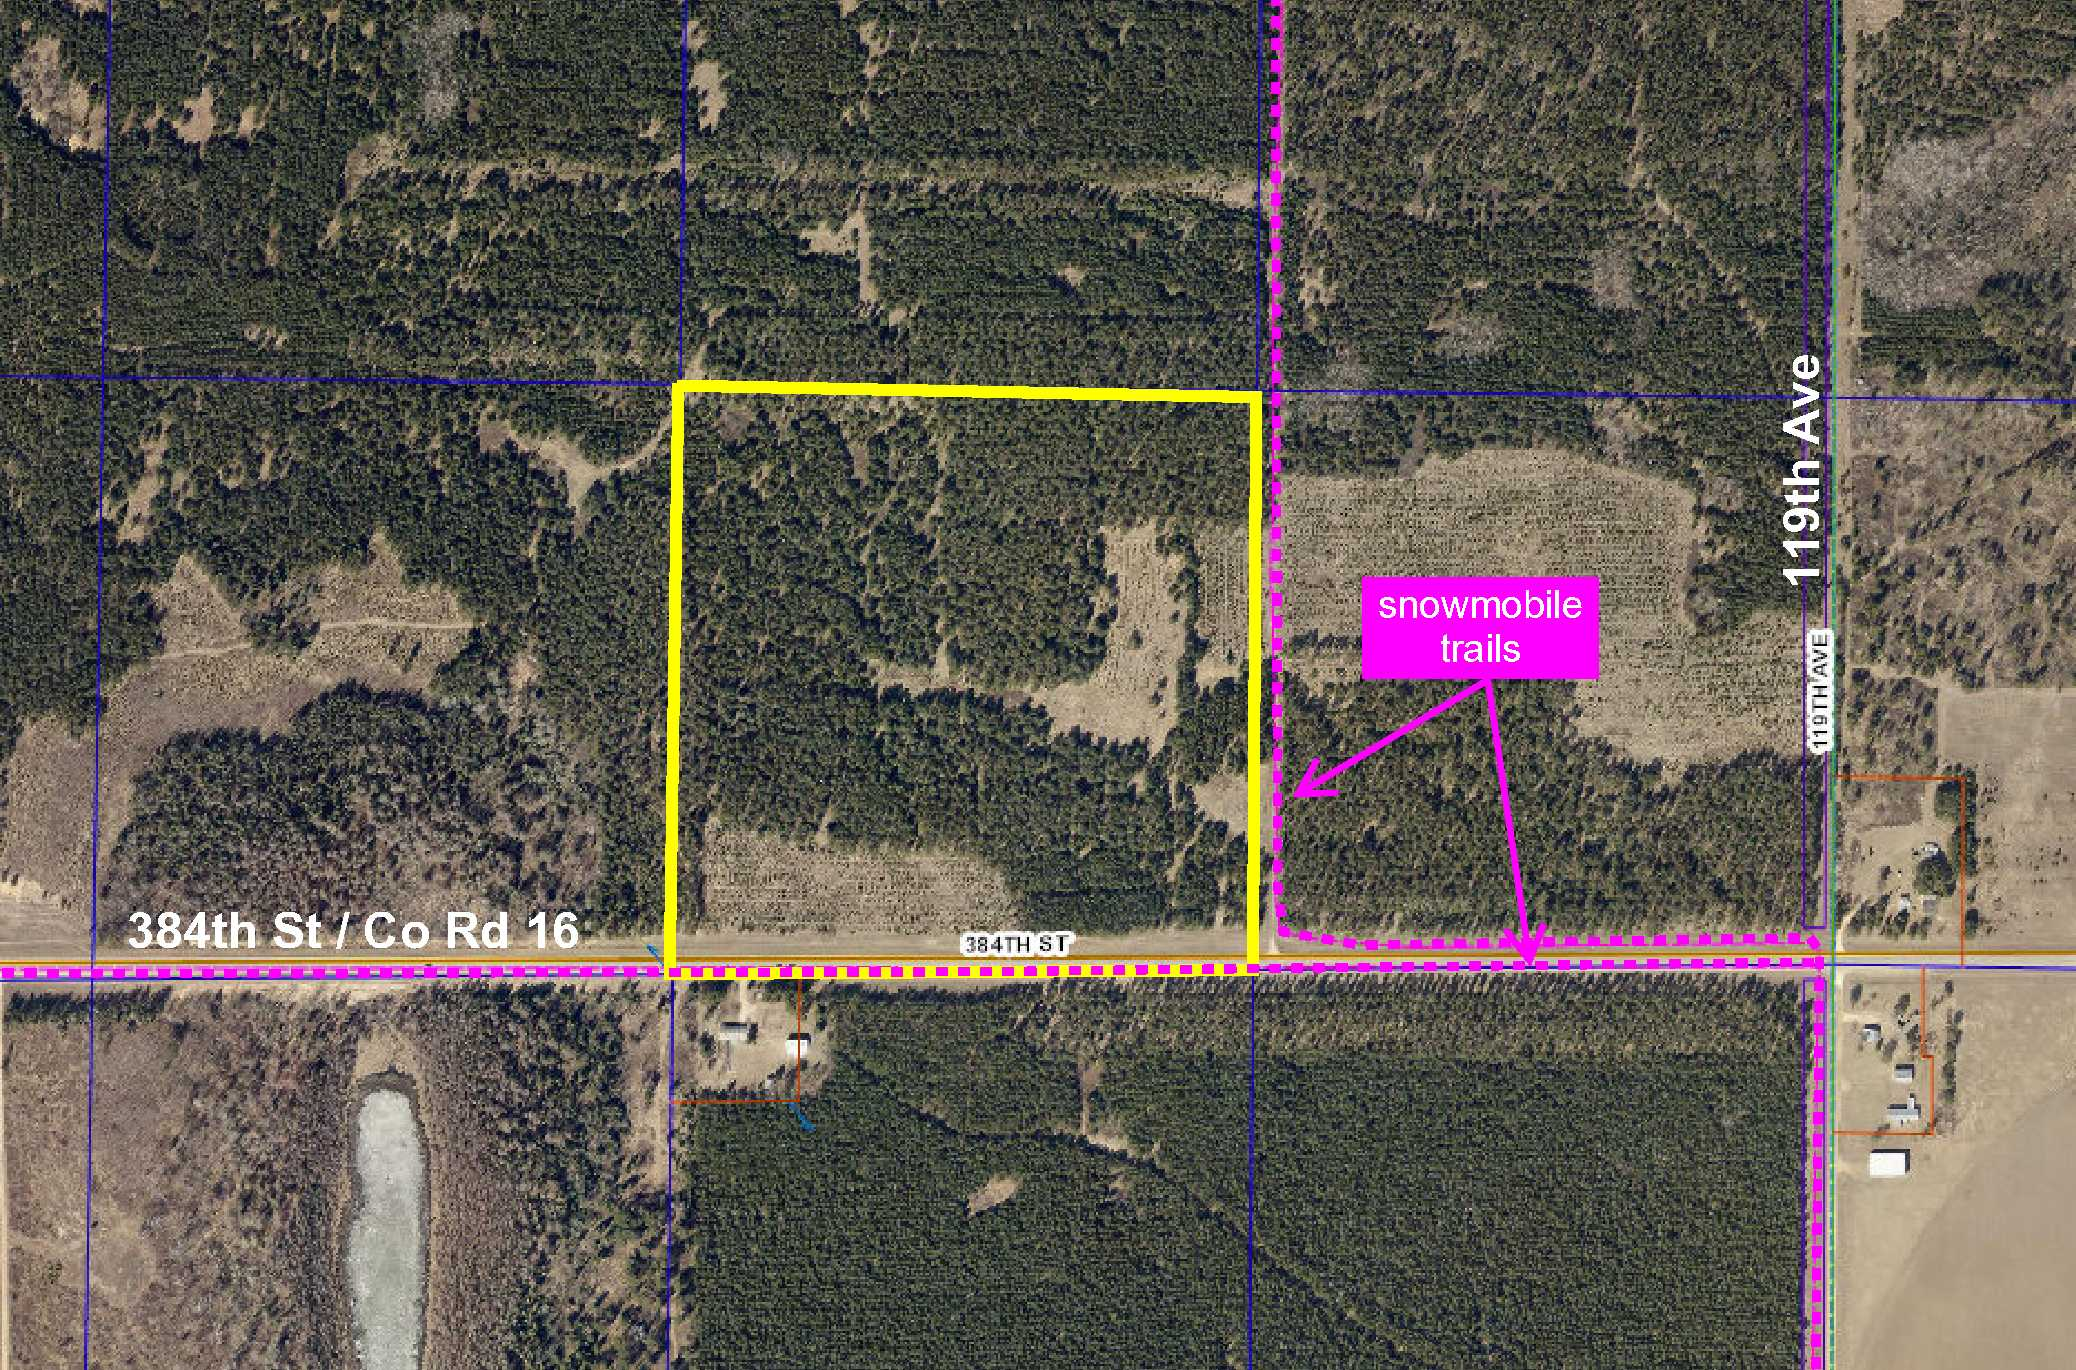 SWNE 384th St (Co Rd 16), Blueberry Twp, Menahga